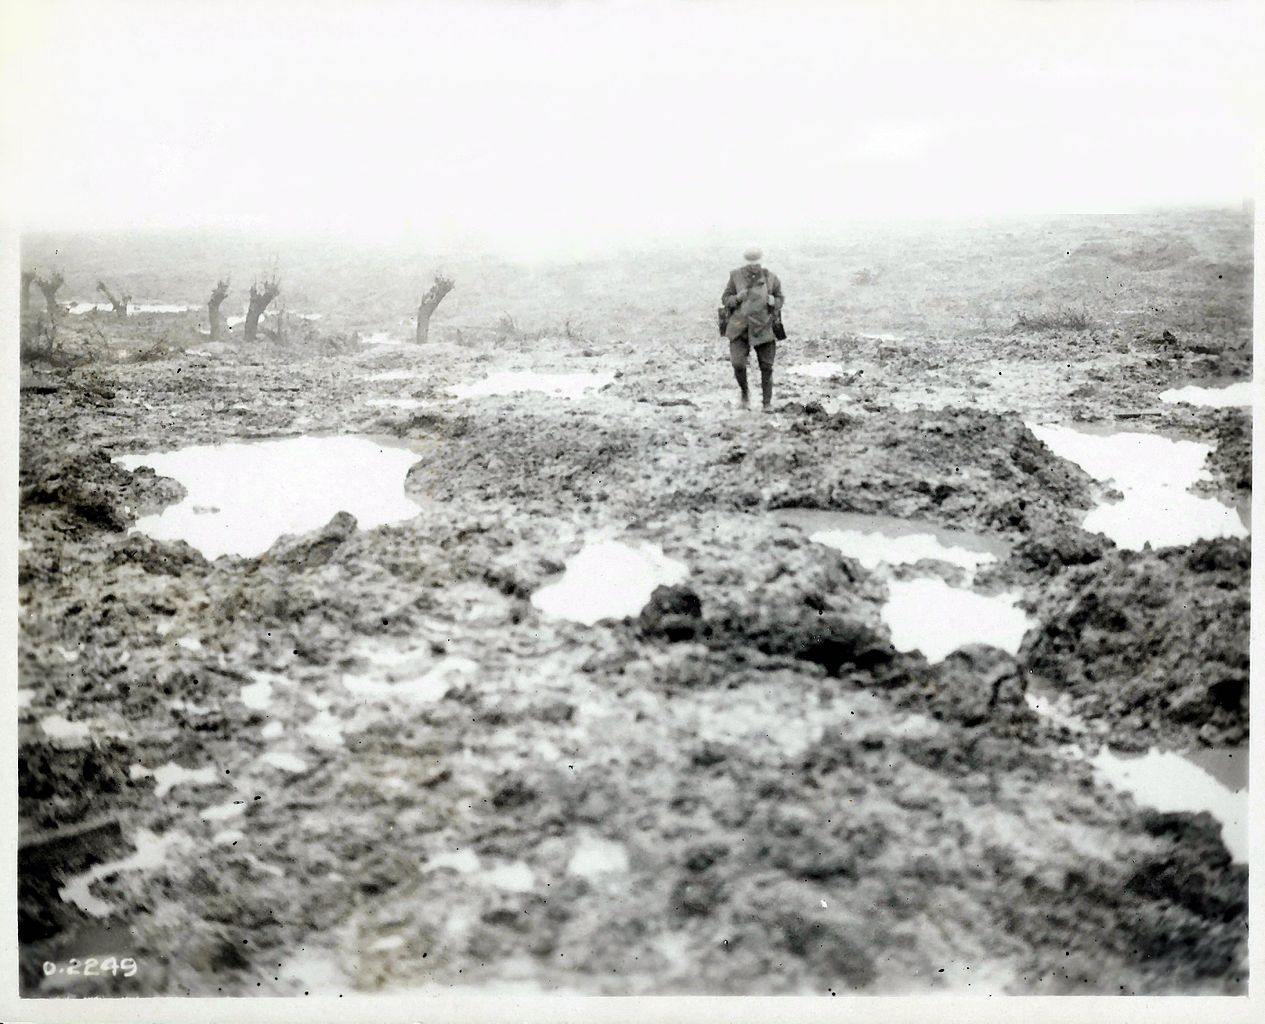 the battle of passchendaele The germans atop passchendaele ridge fired continuously on these efforts, killing or wounding hundreds his preparations ready, currie launched a deliberate or 'set-piece' attack on 26 october, the first of four phases in a battle he estimated might cost 16,000 canadians killed or wounded.